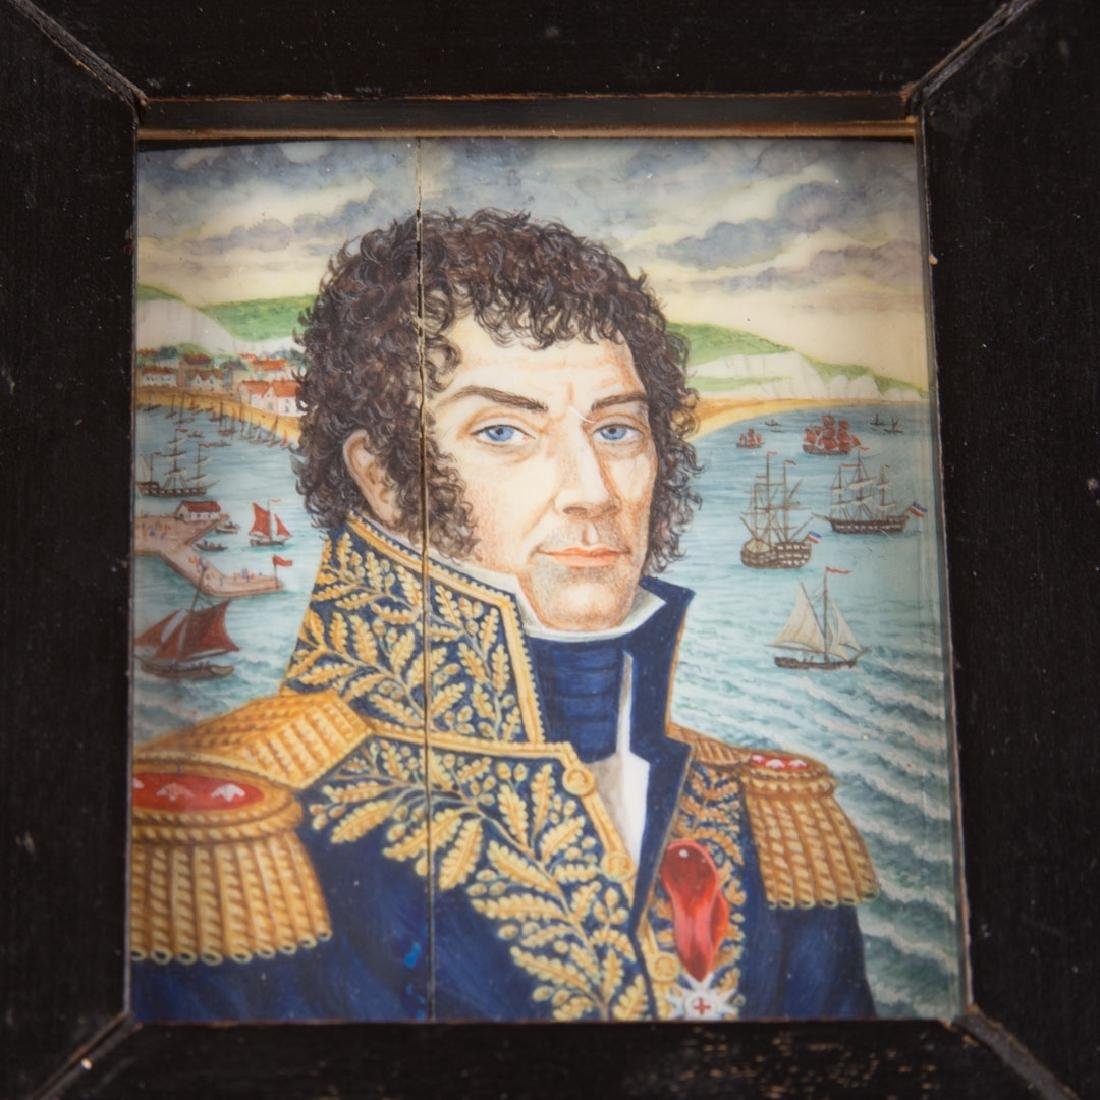 Chinese Export miniature naval officer portrait - 2